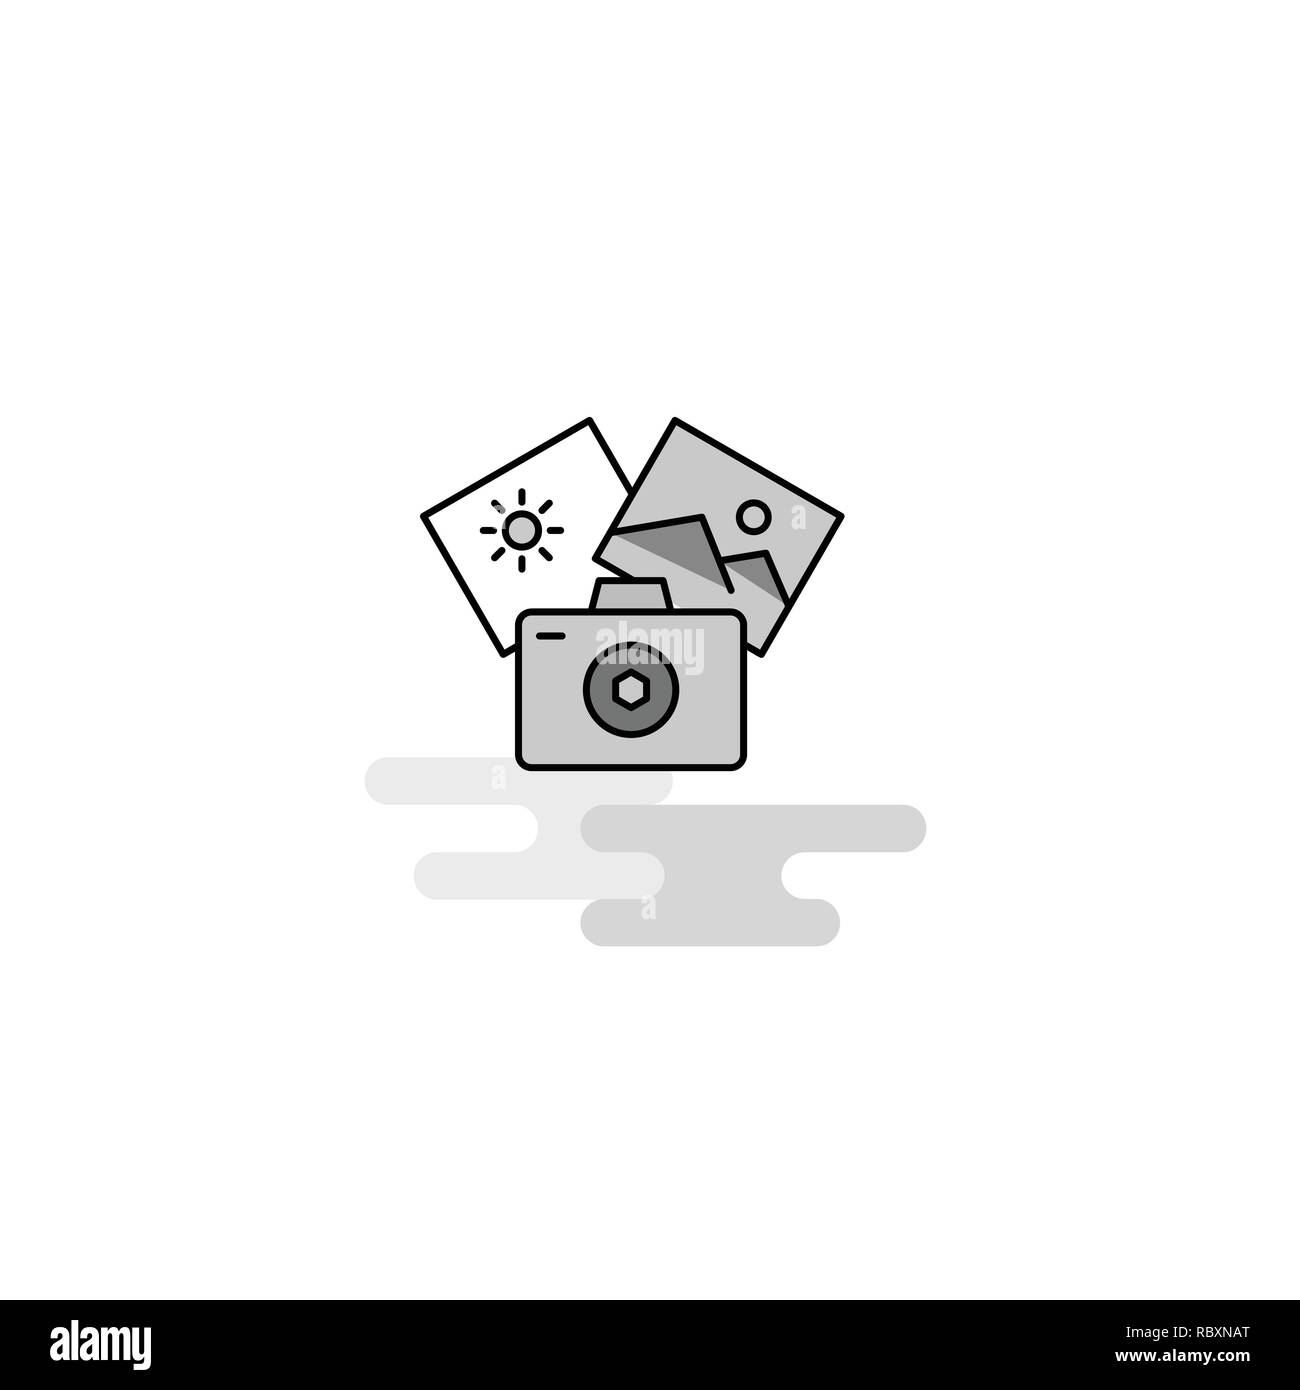 Photography  Web Icon. Flat Line Filled Gray Icon Vector Stock Vector